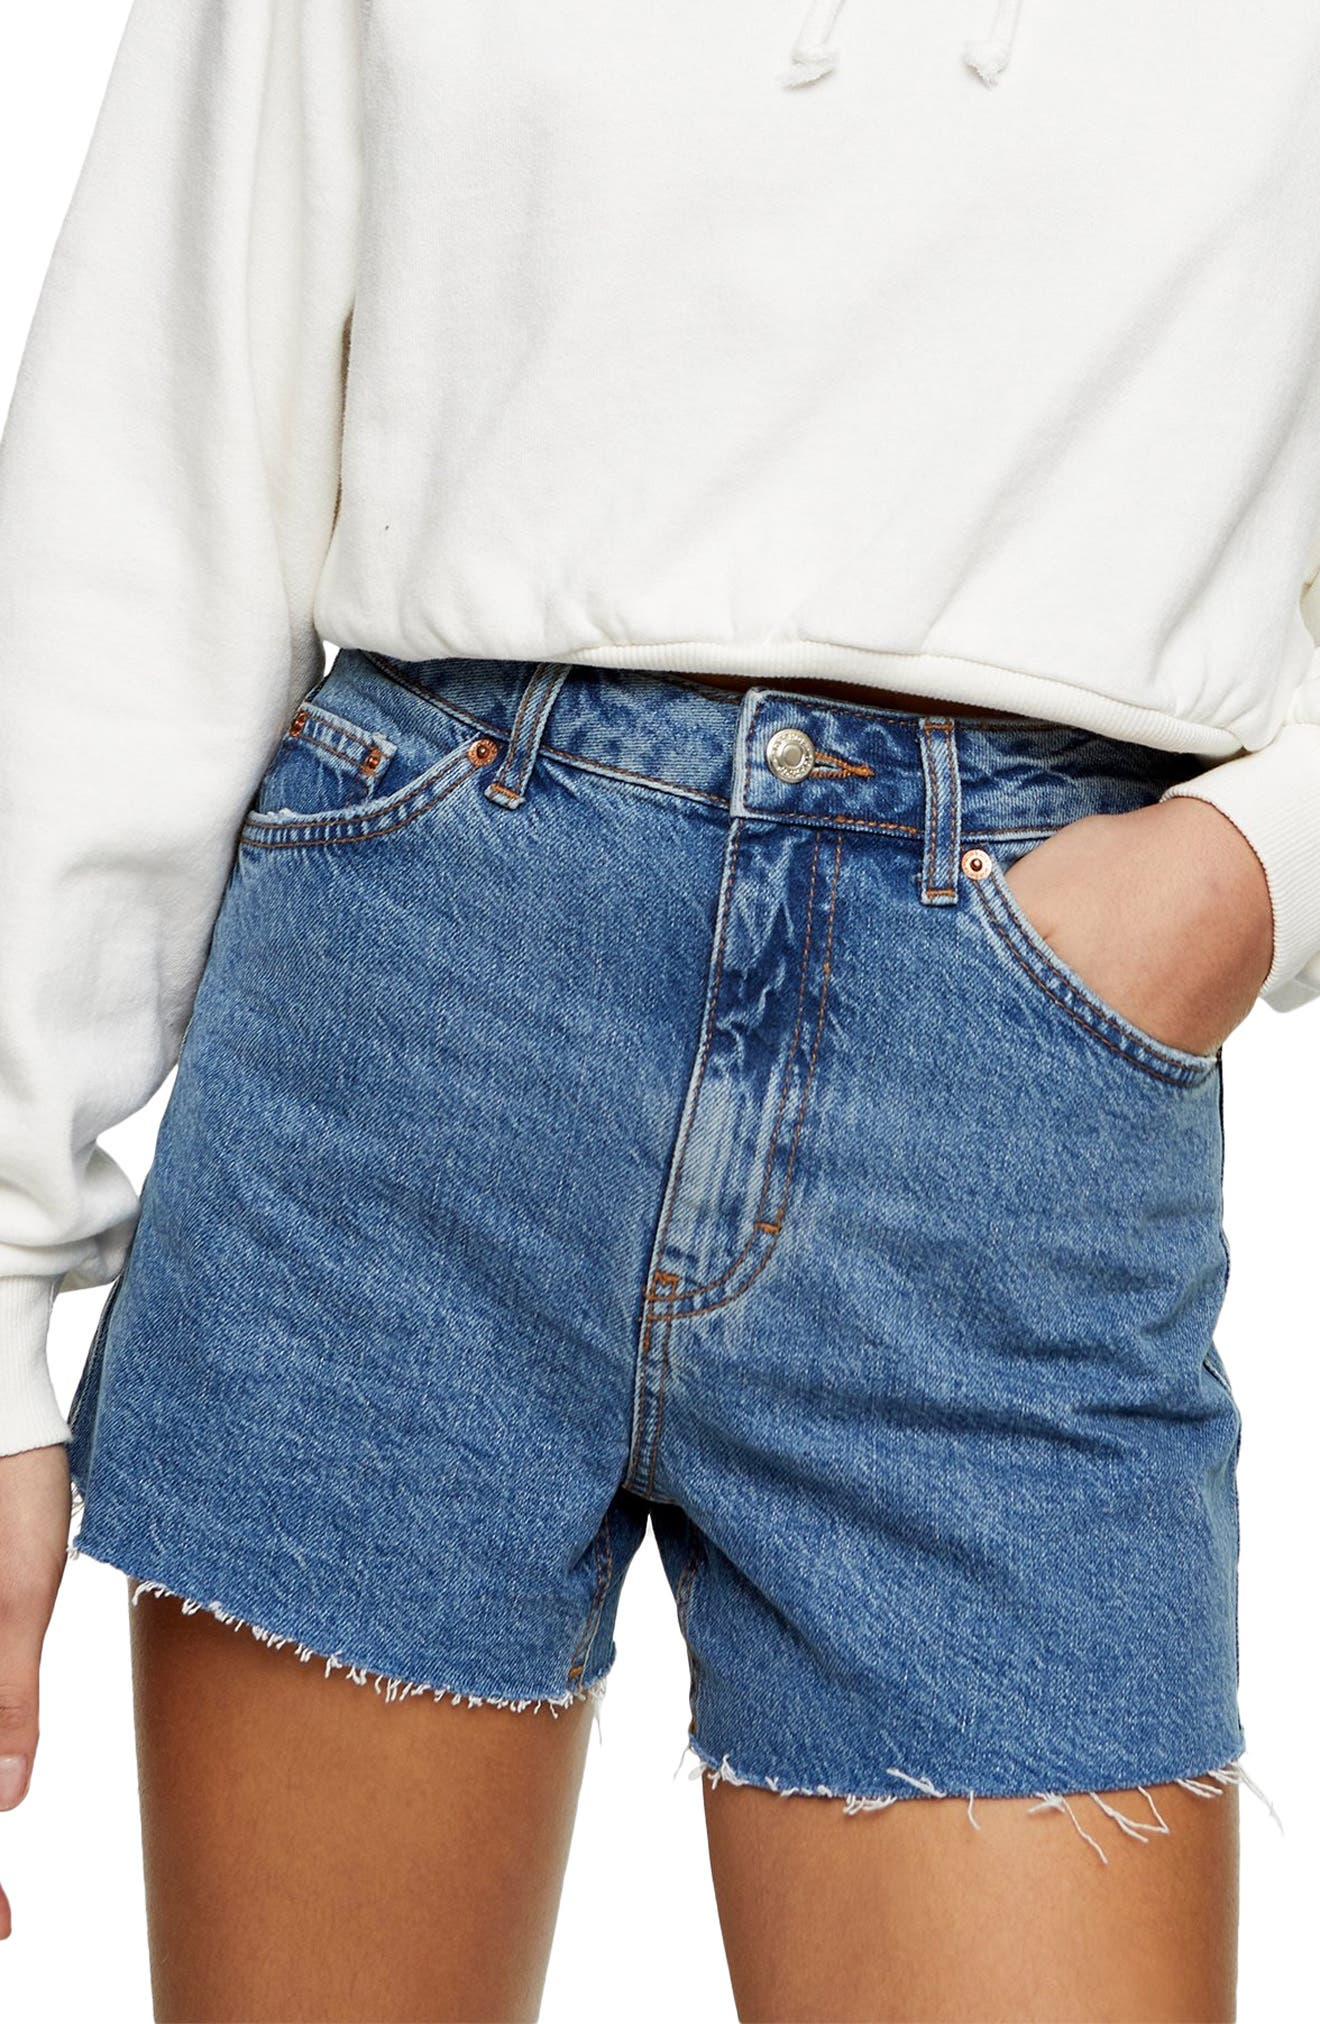 PALIMA Very High Waisted Button-up Dark Denim Jean Shorts with Cuffs and Buckle Detail